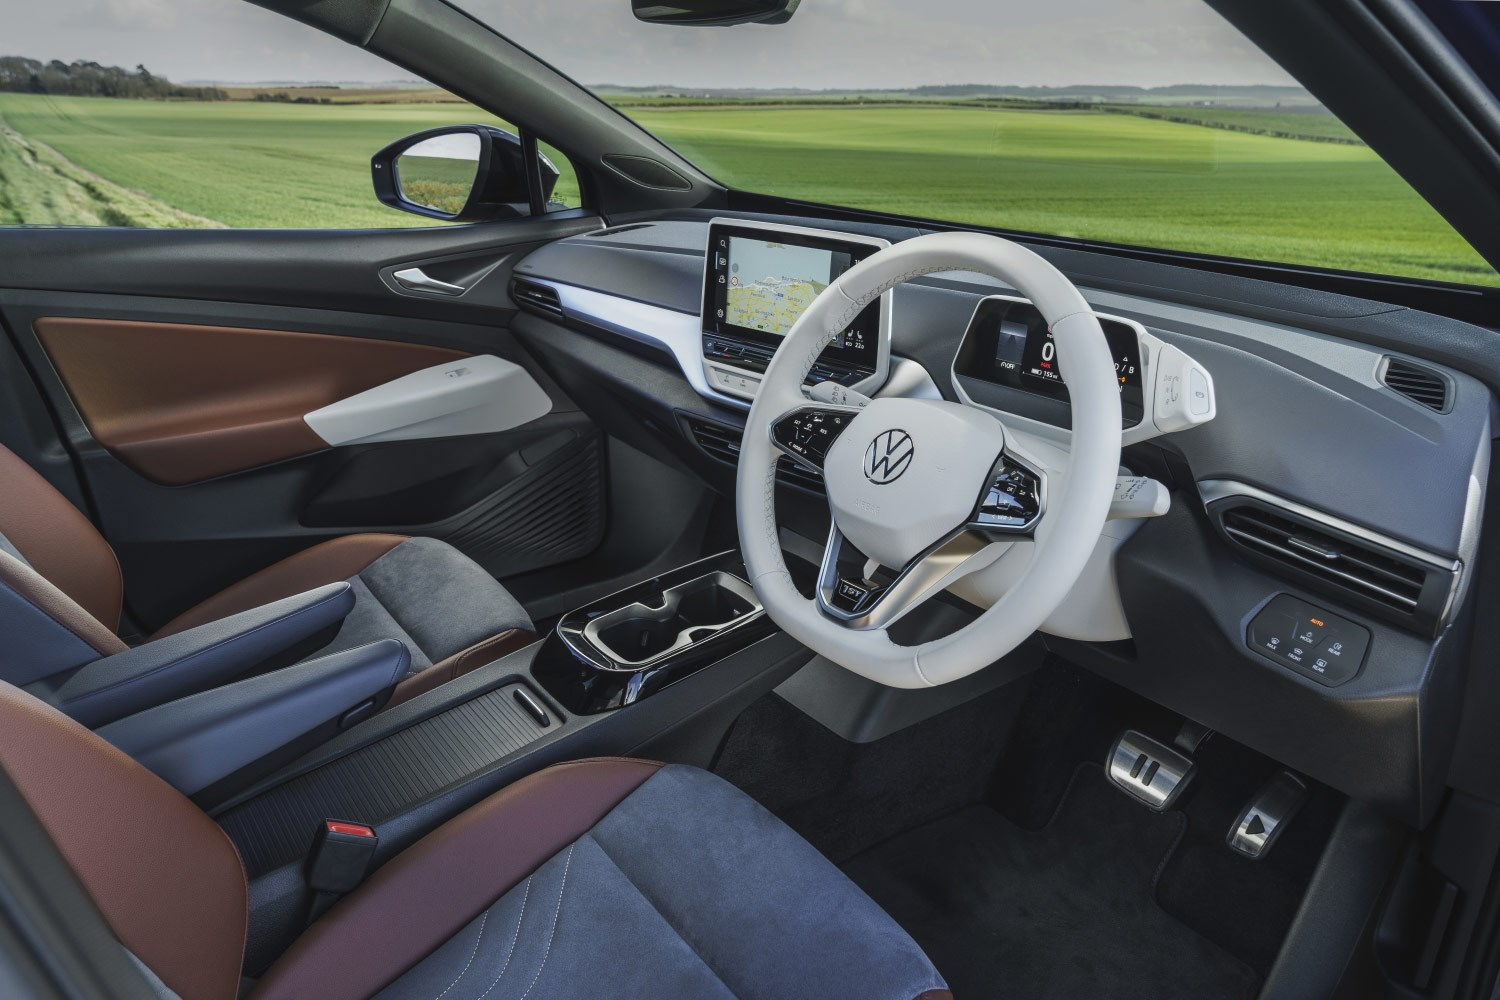 Volkswagen ID.4 interior and cabin